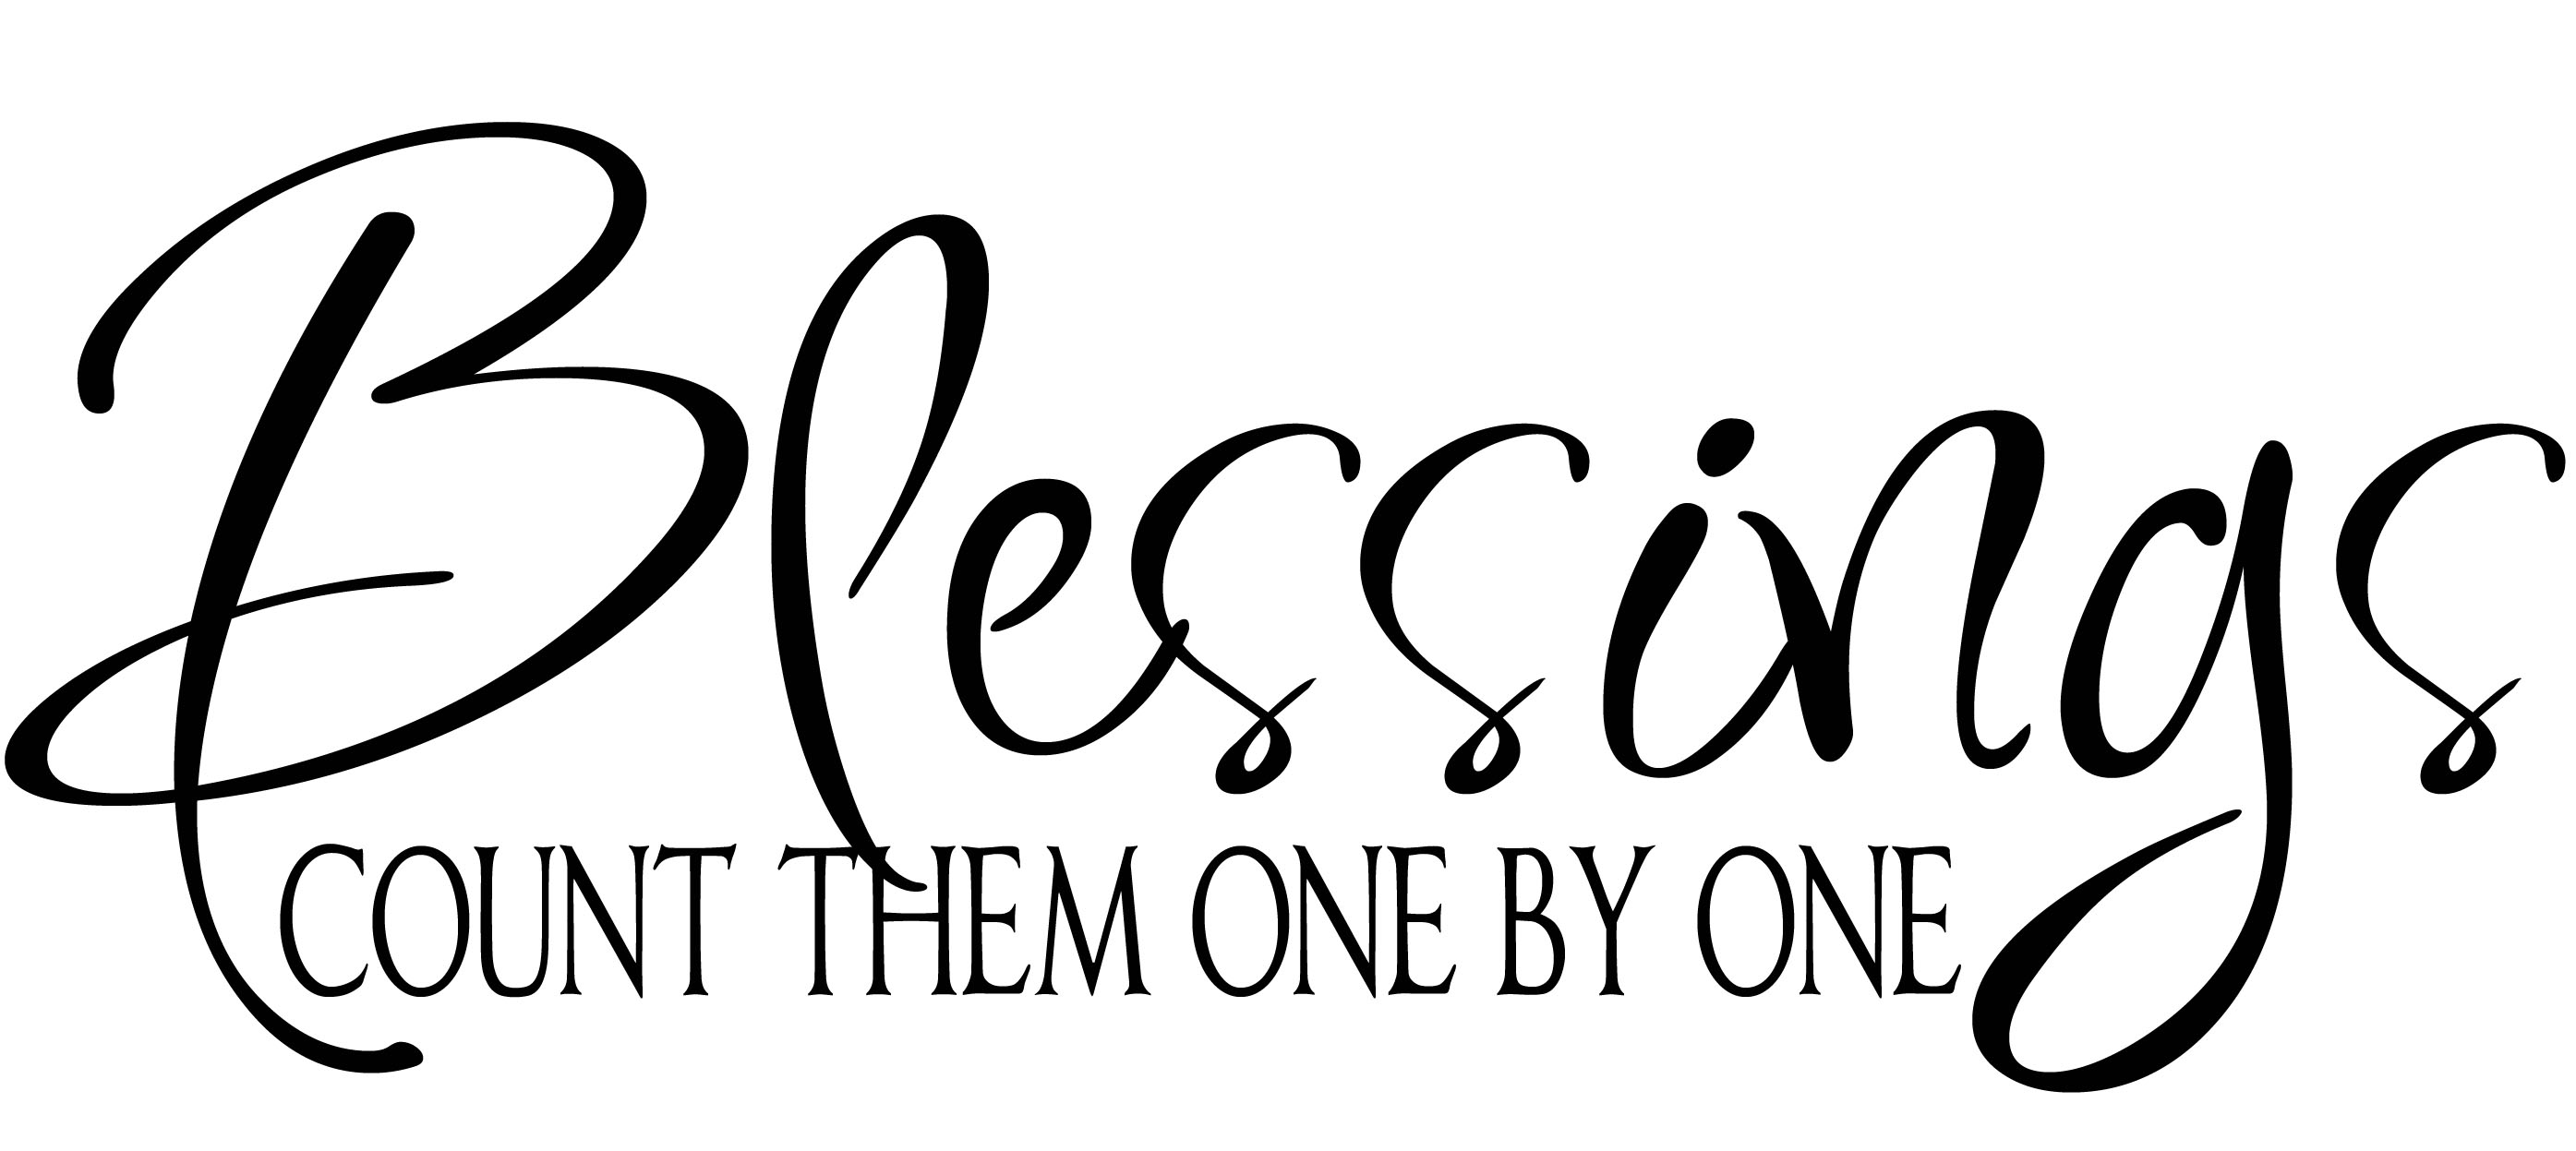 May god richly bless you clipart black and white vector transparent library blessings | ABIDING IN THE VINE vector transparent library